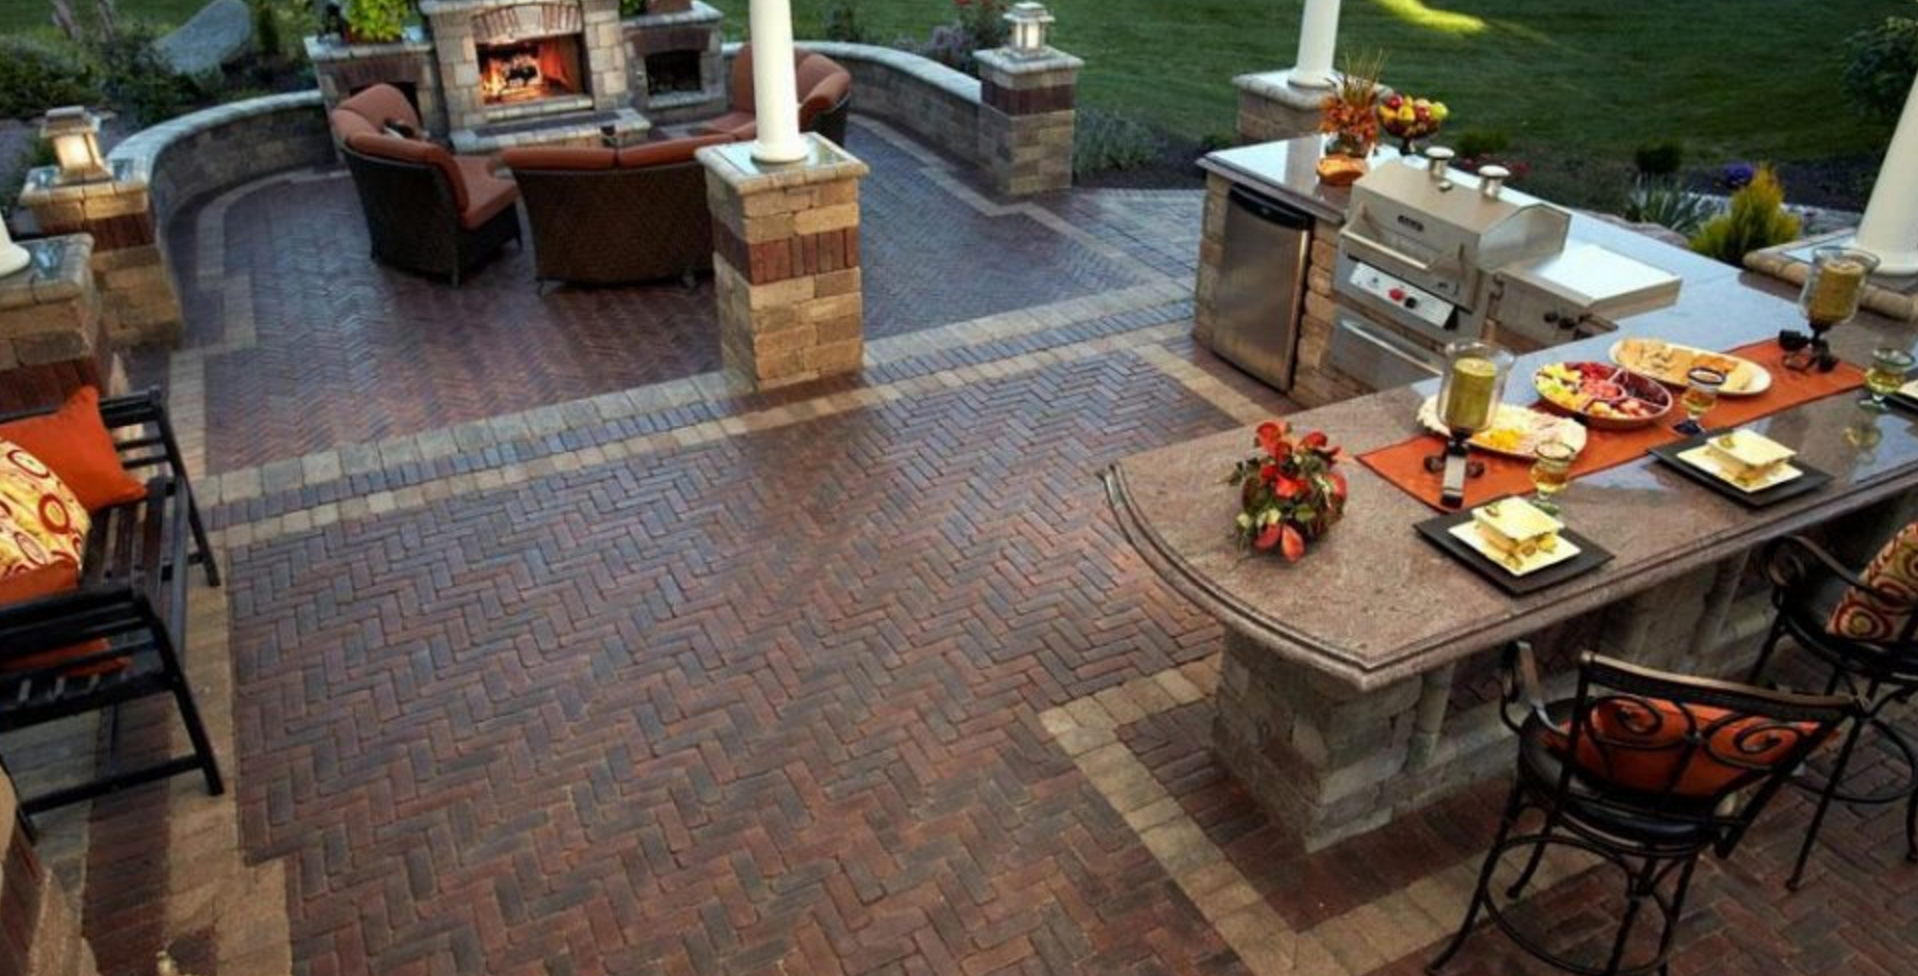 Landscaping ideas for NY and NJ: Outdoor fireplaces, outdoor kitchens